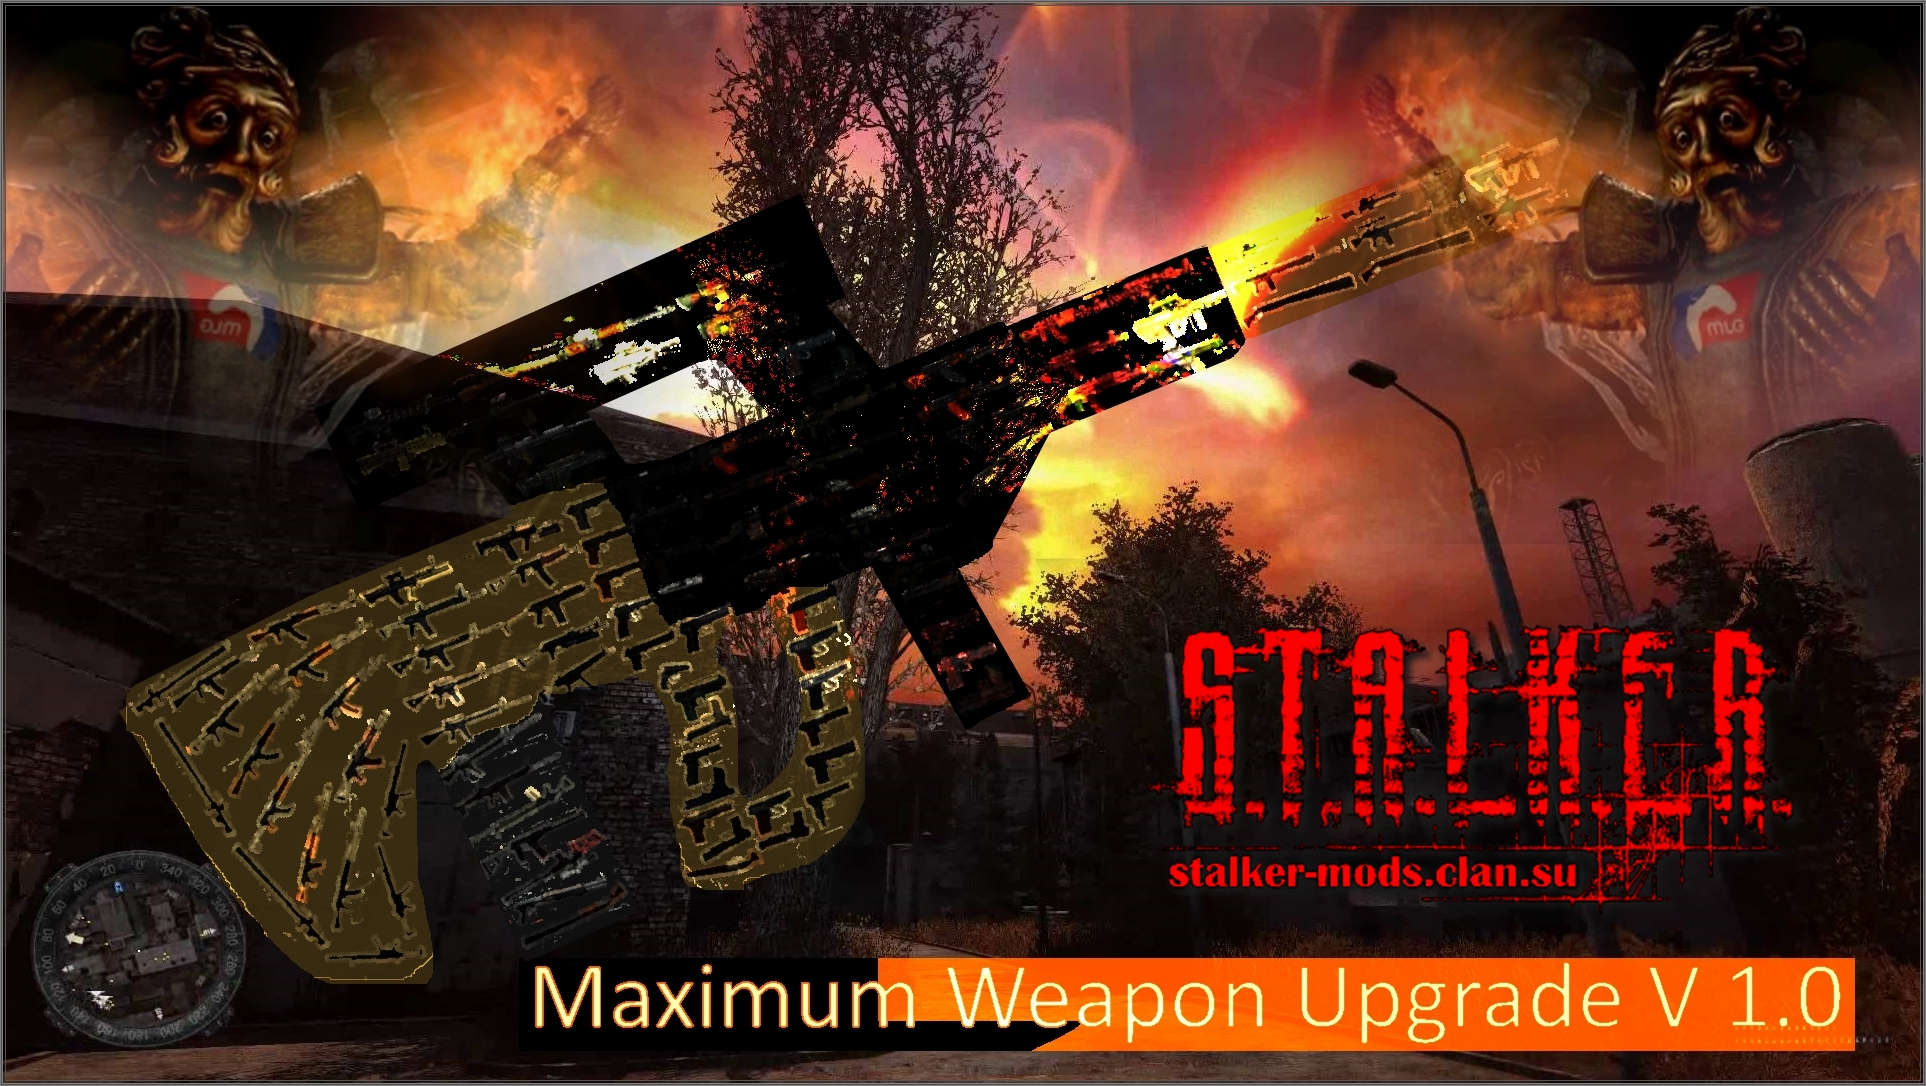 Maximum Weapon Upgrade v1